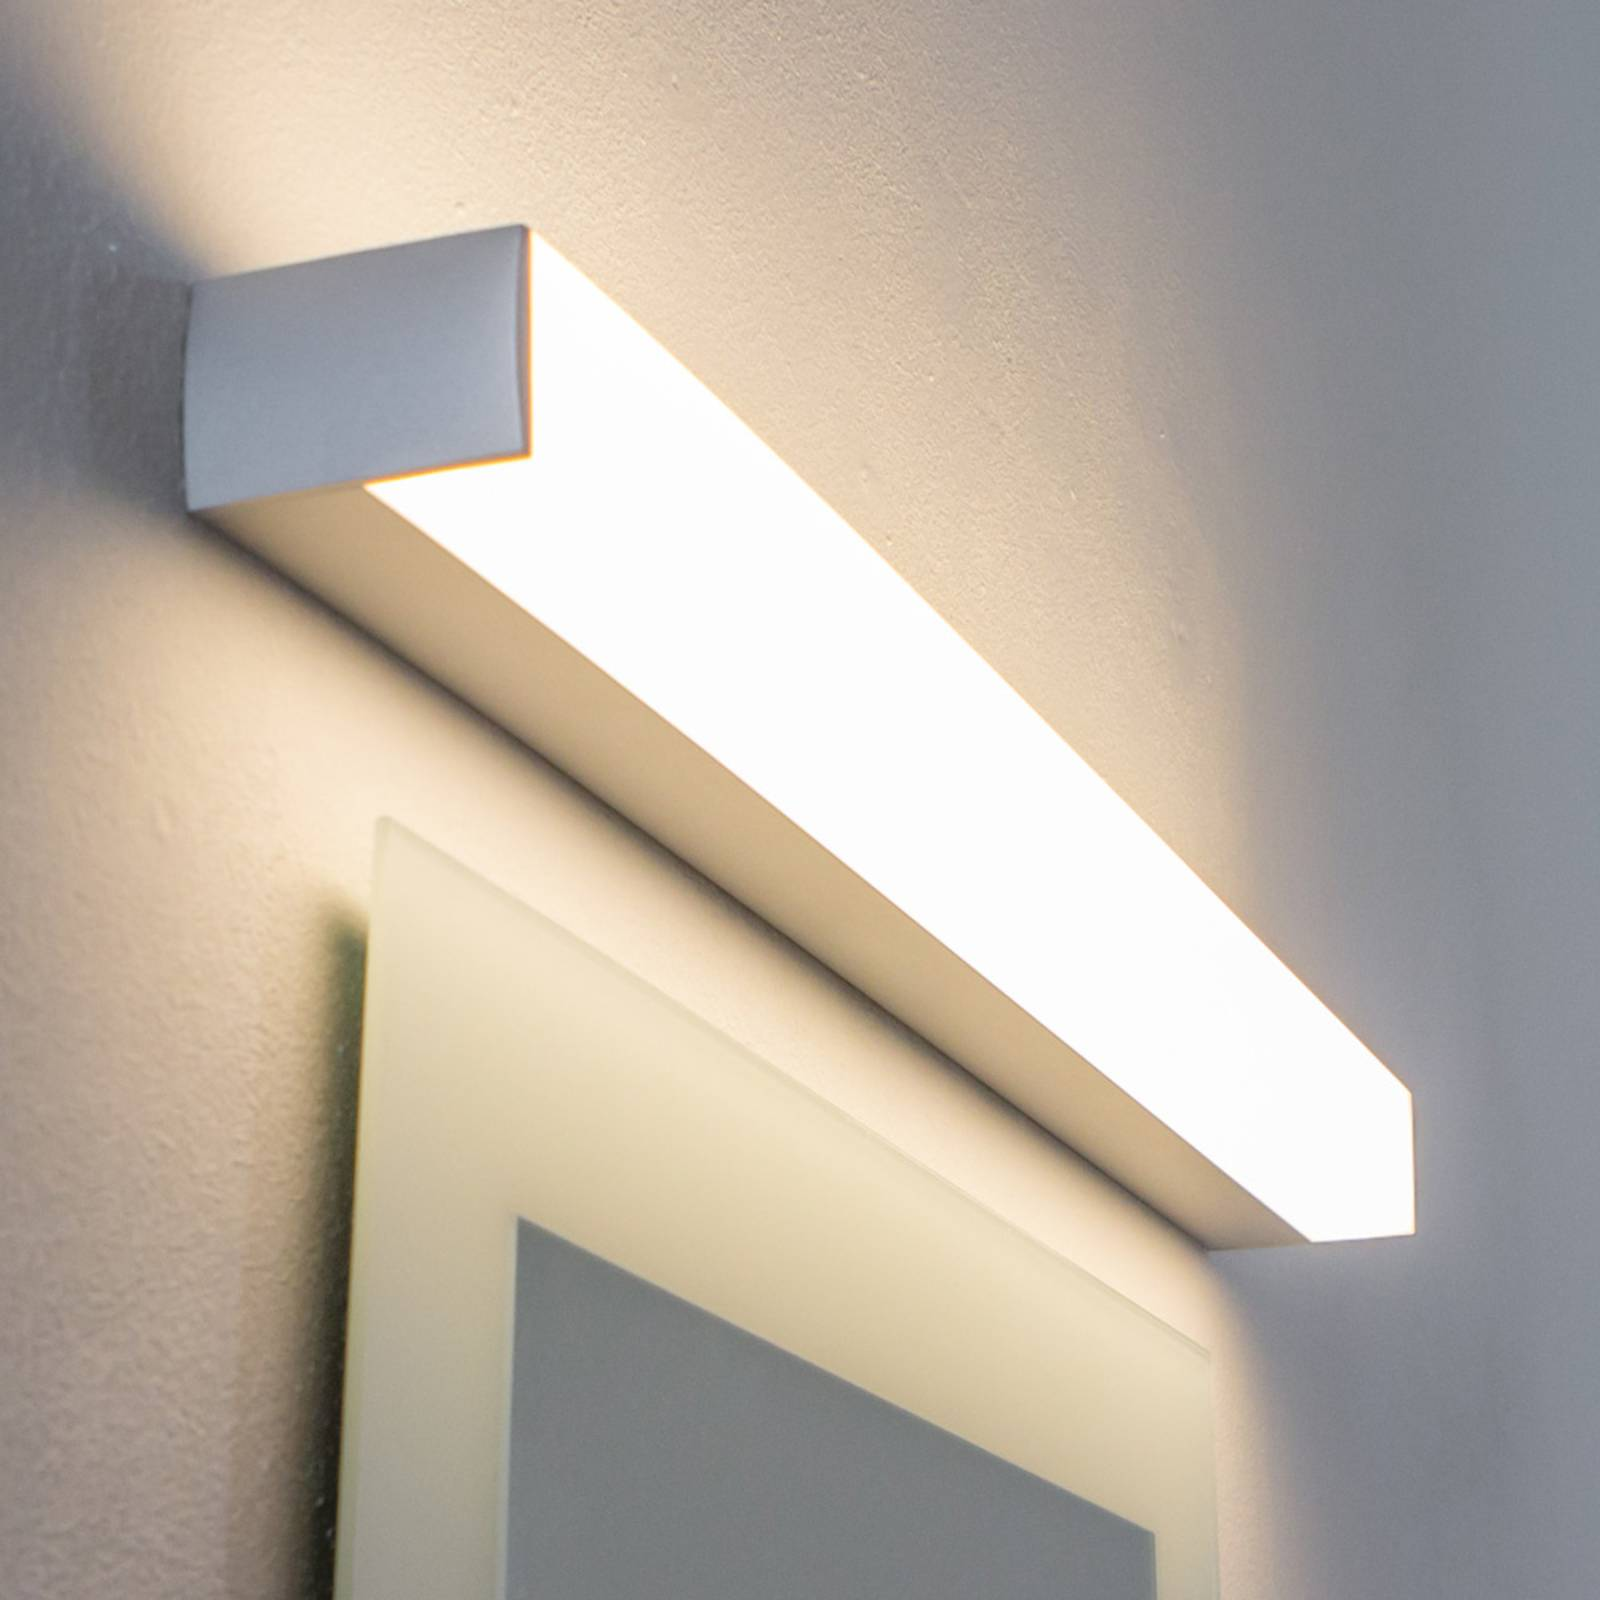 LED wall light Seno for mirror in bathroom 83.6 cm from Pamalux